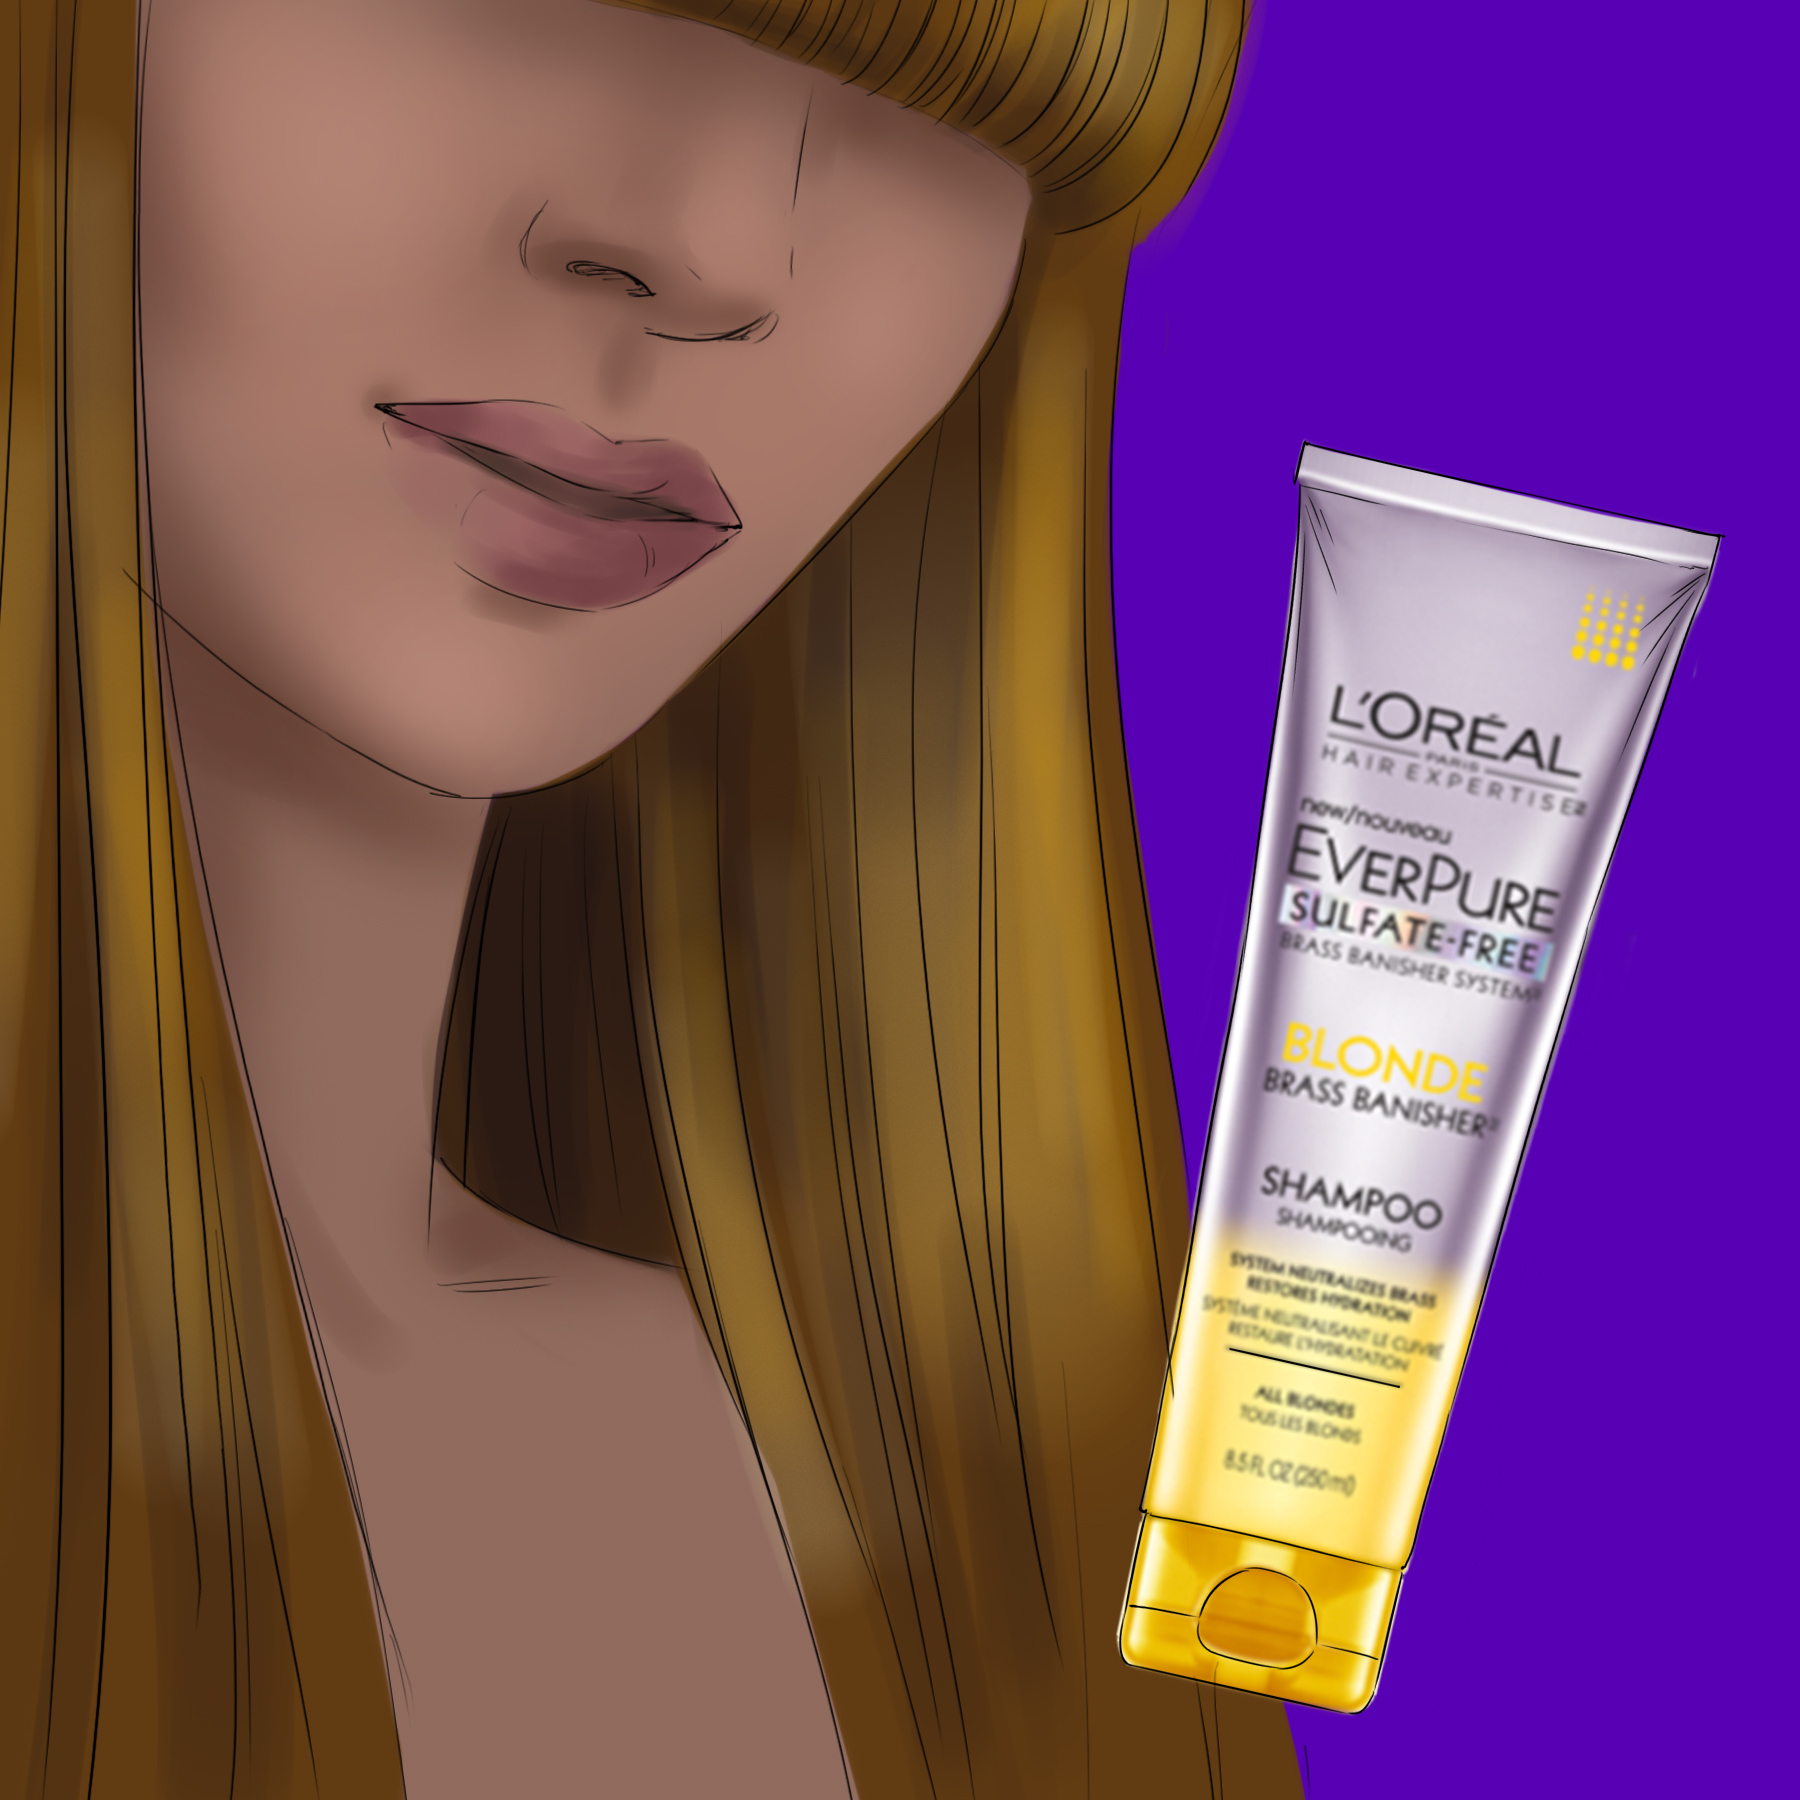 L'Oreal 4color